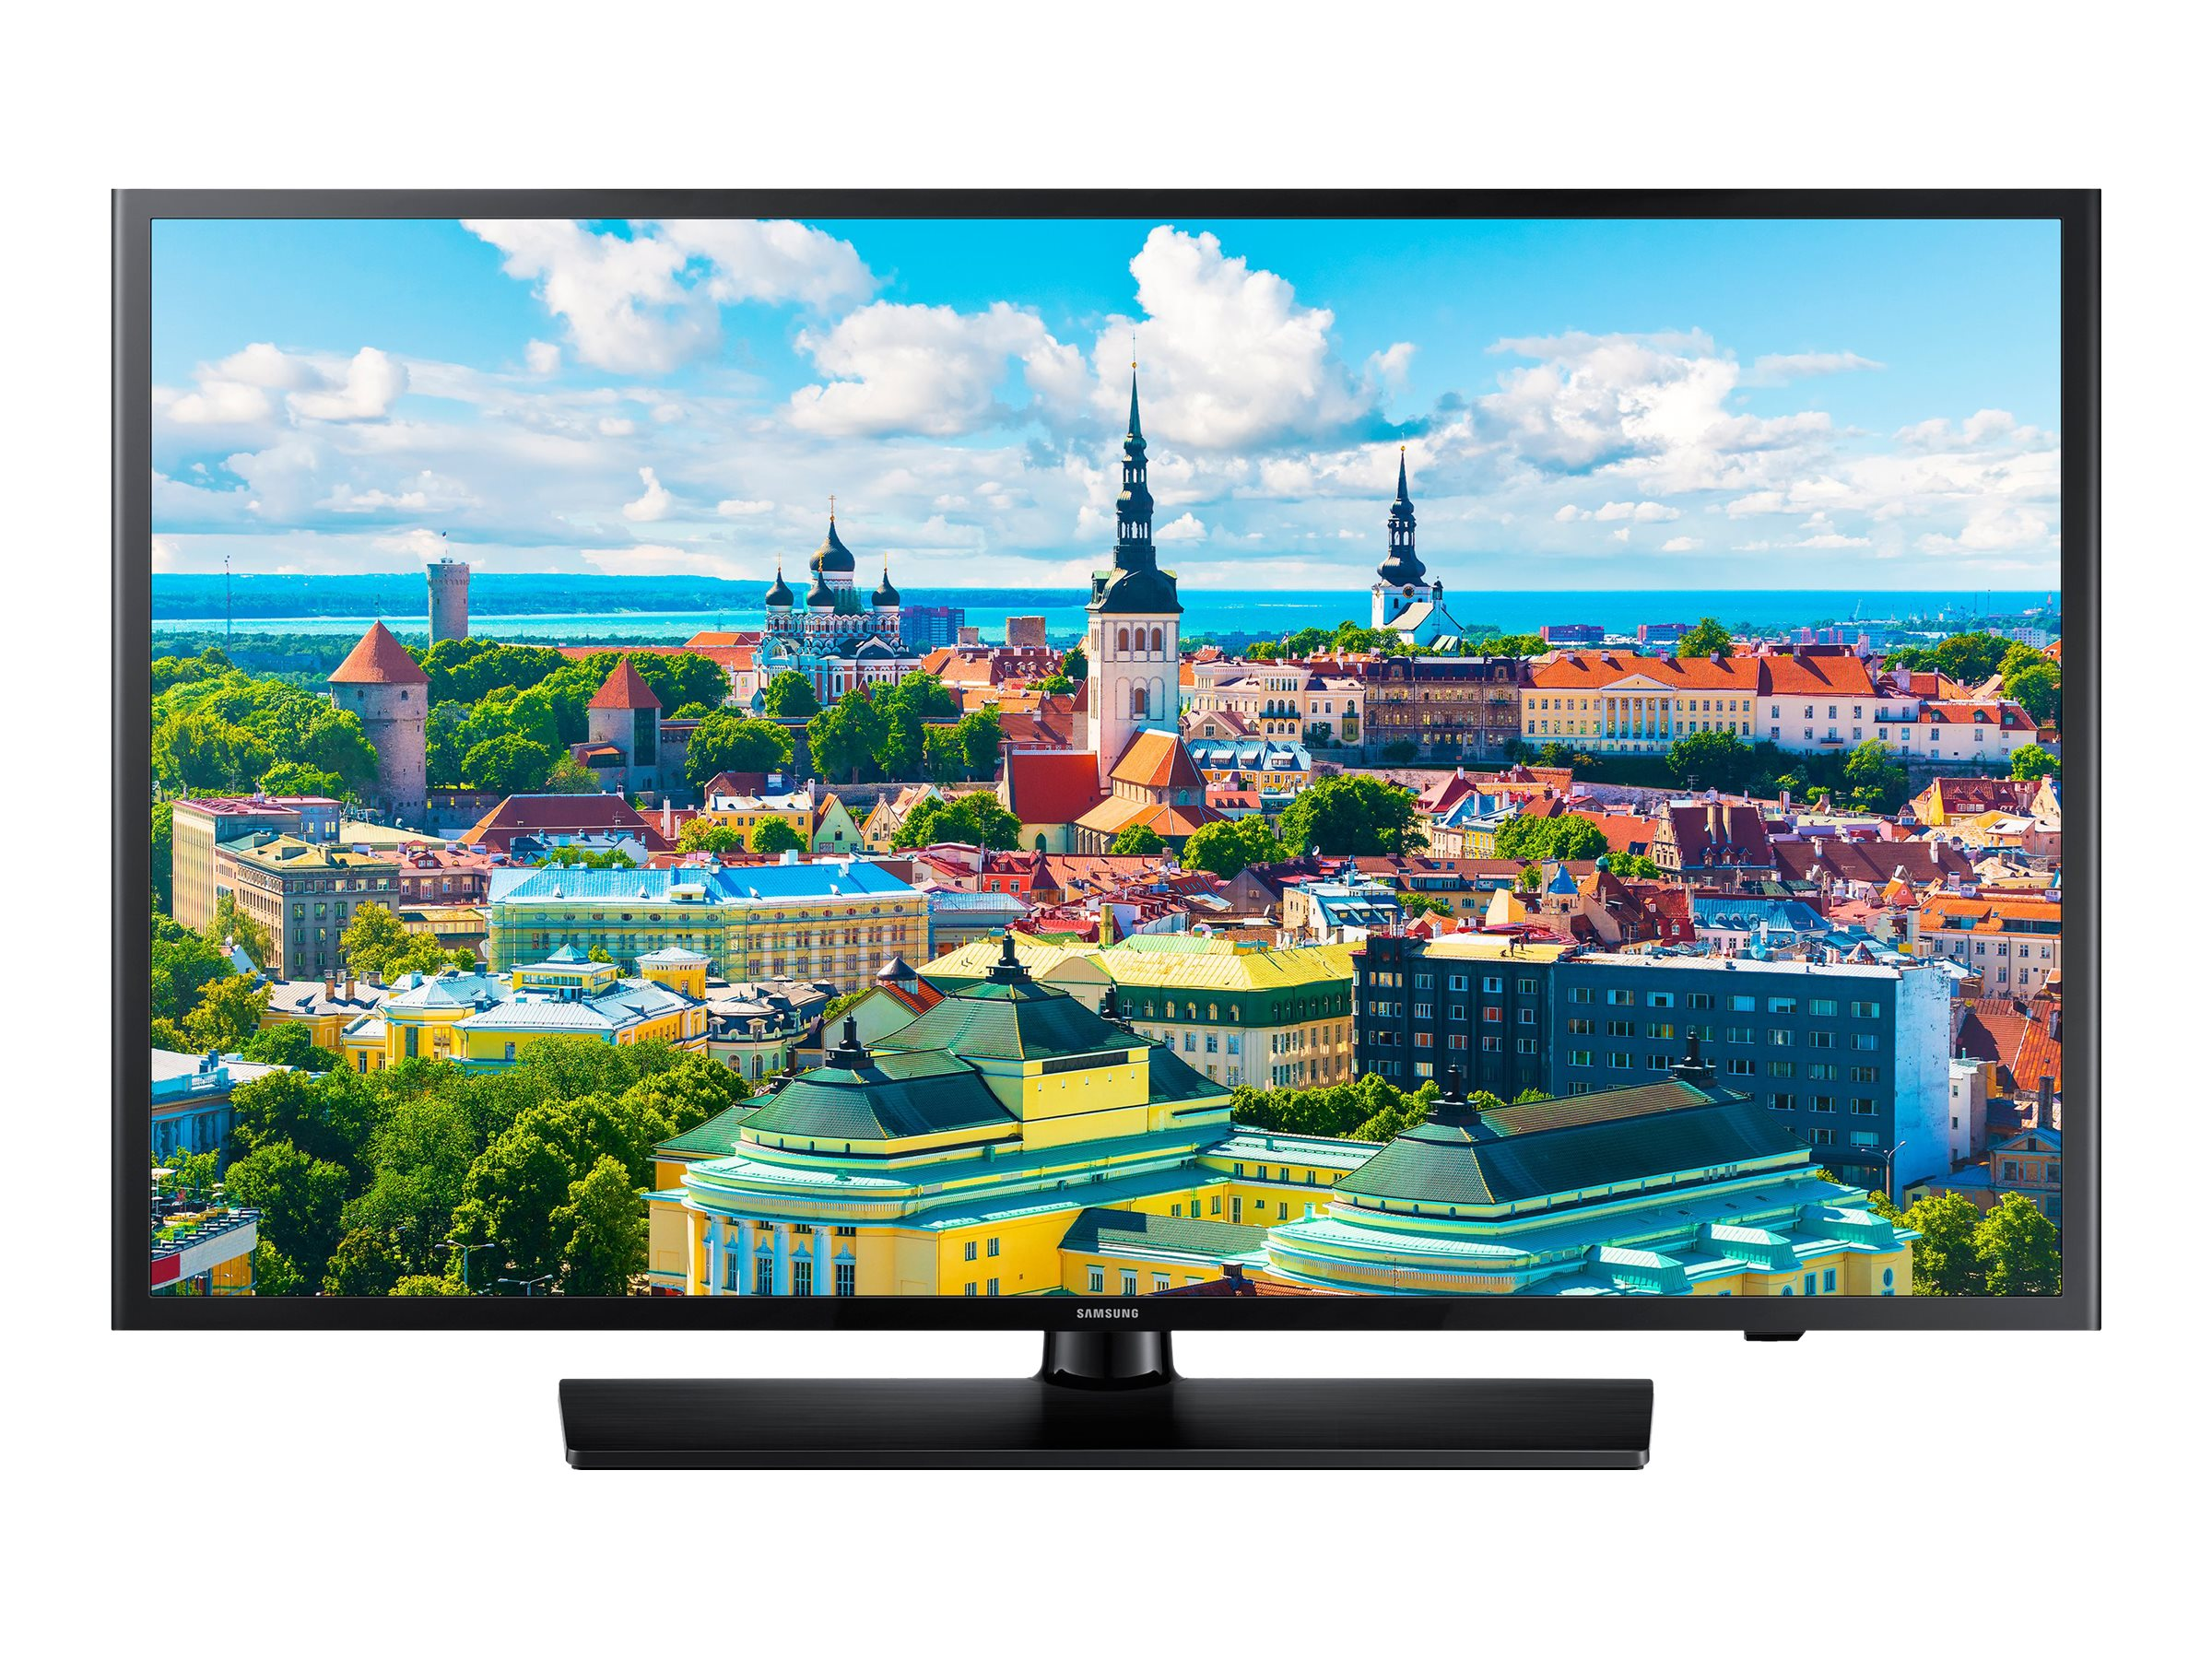 Samsung 40 477 Full HD Series LED-LCD Hospitality TV, Black